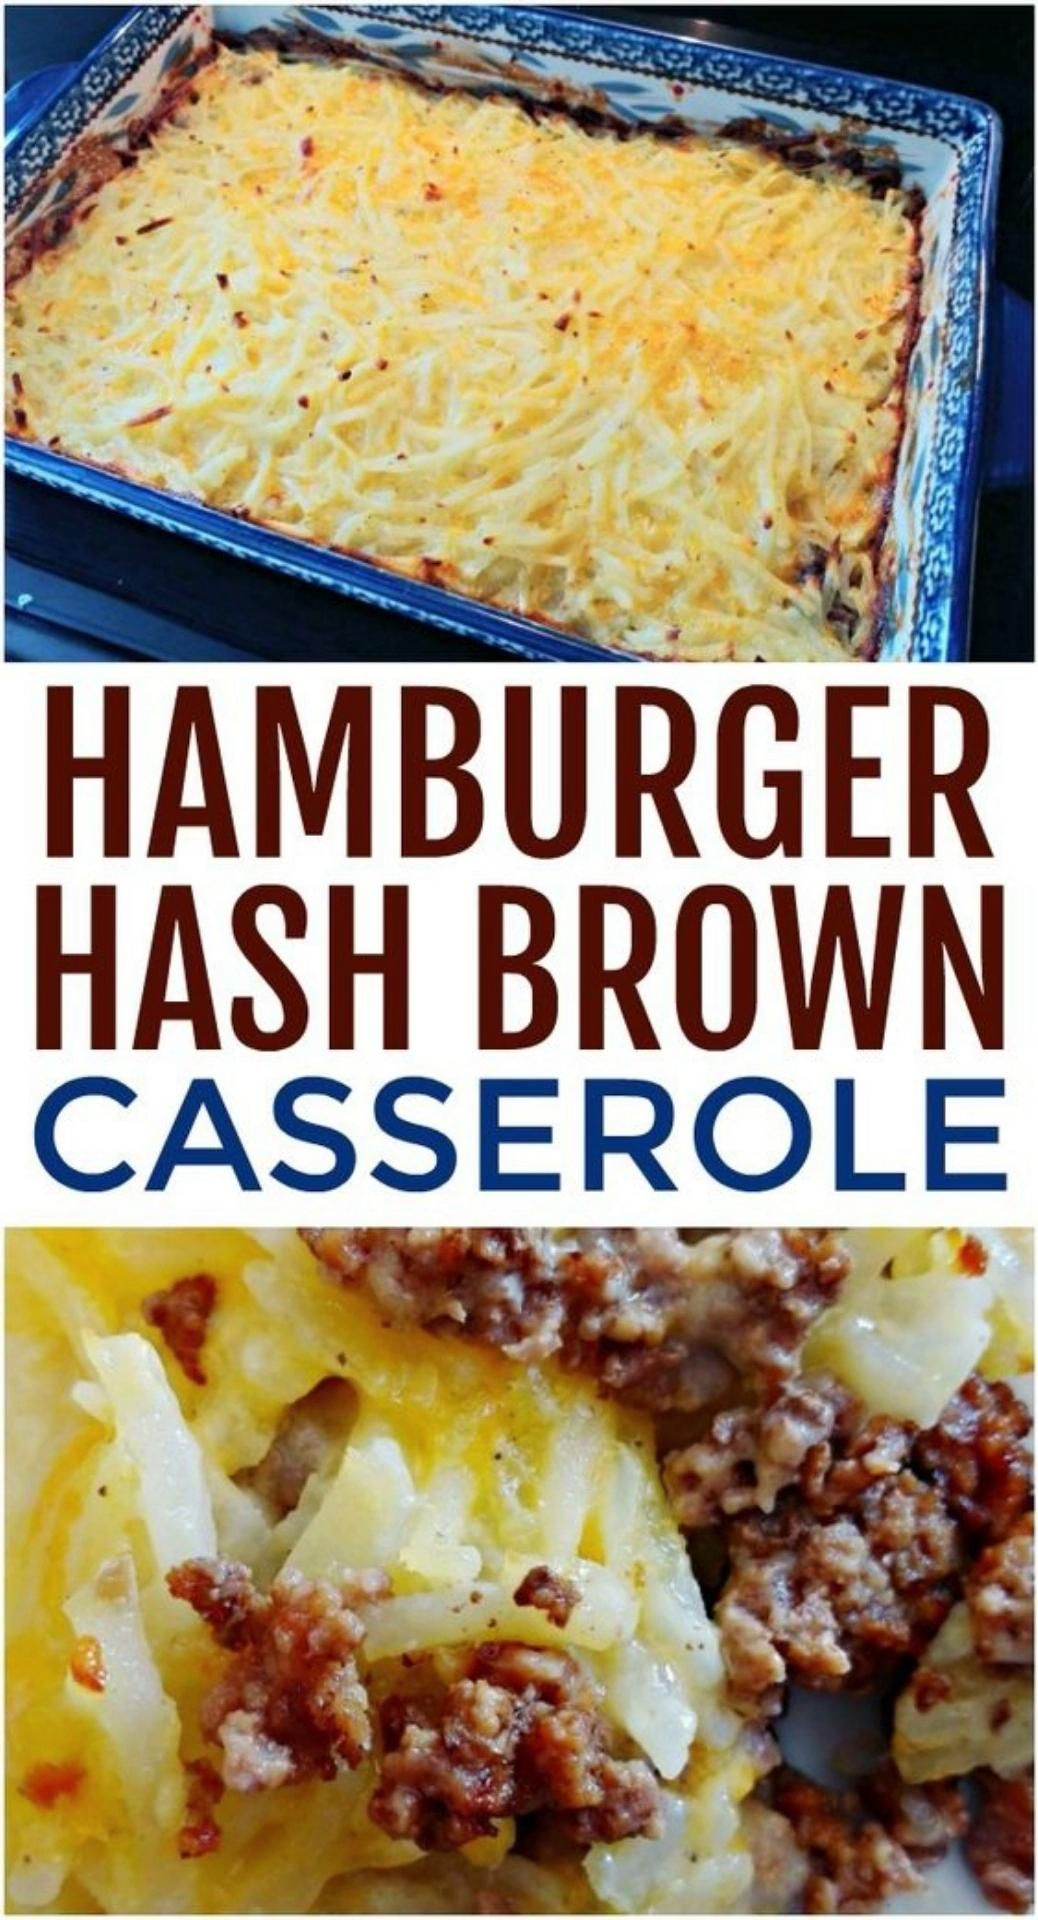 Hamburger Hash Brown Casserole is the perfect quick and easy dinner to throw together on a busy night. It will hit the spot! A cheesy, ground beef recipe that is creamy and delicious and perfect for dinner tonight.